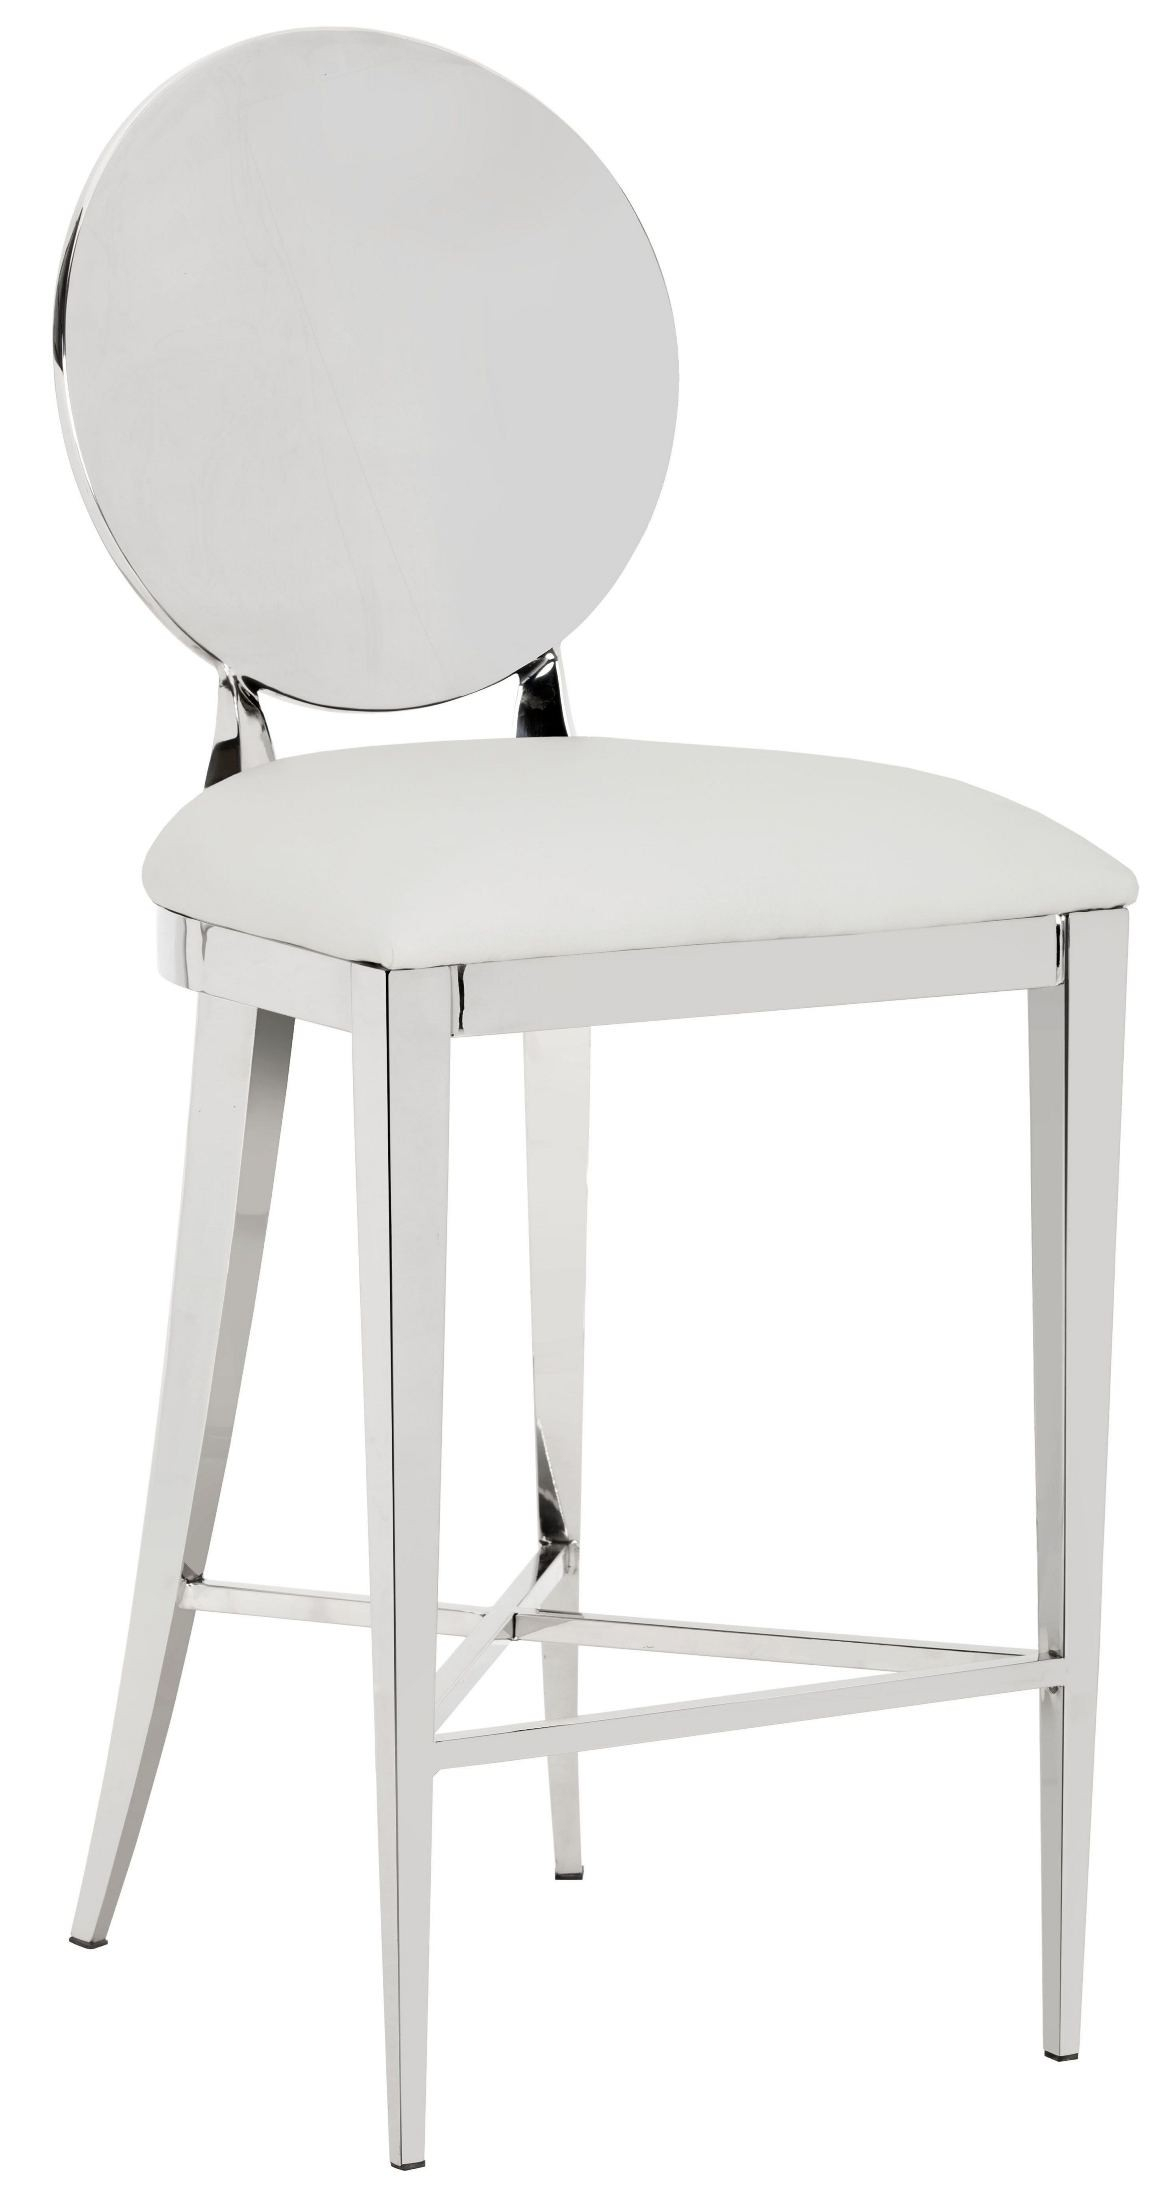 Marissa White Counter Stool From Sunpan | Coleman Furniture Regarding Marissa Sofa Chairs (Image 23 of 25)